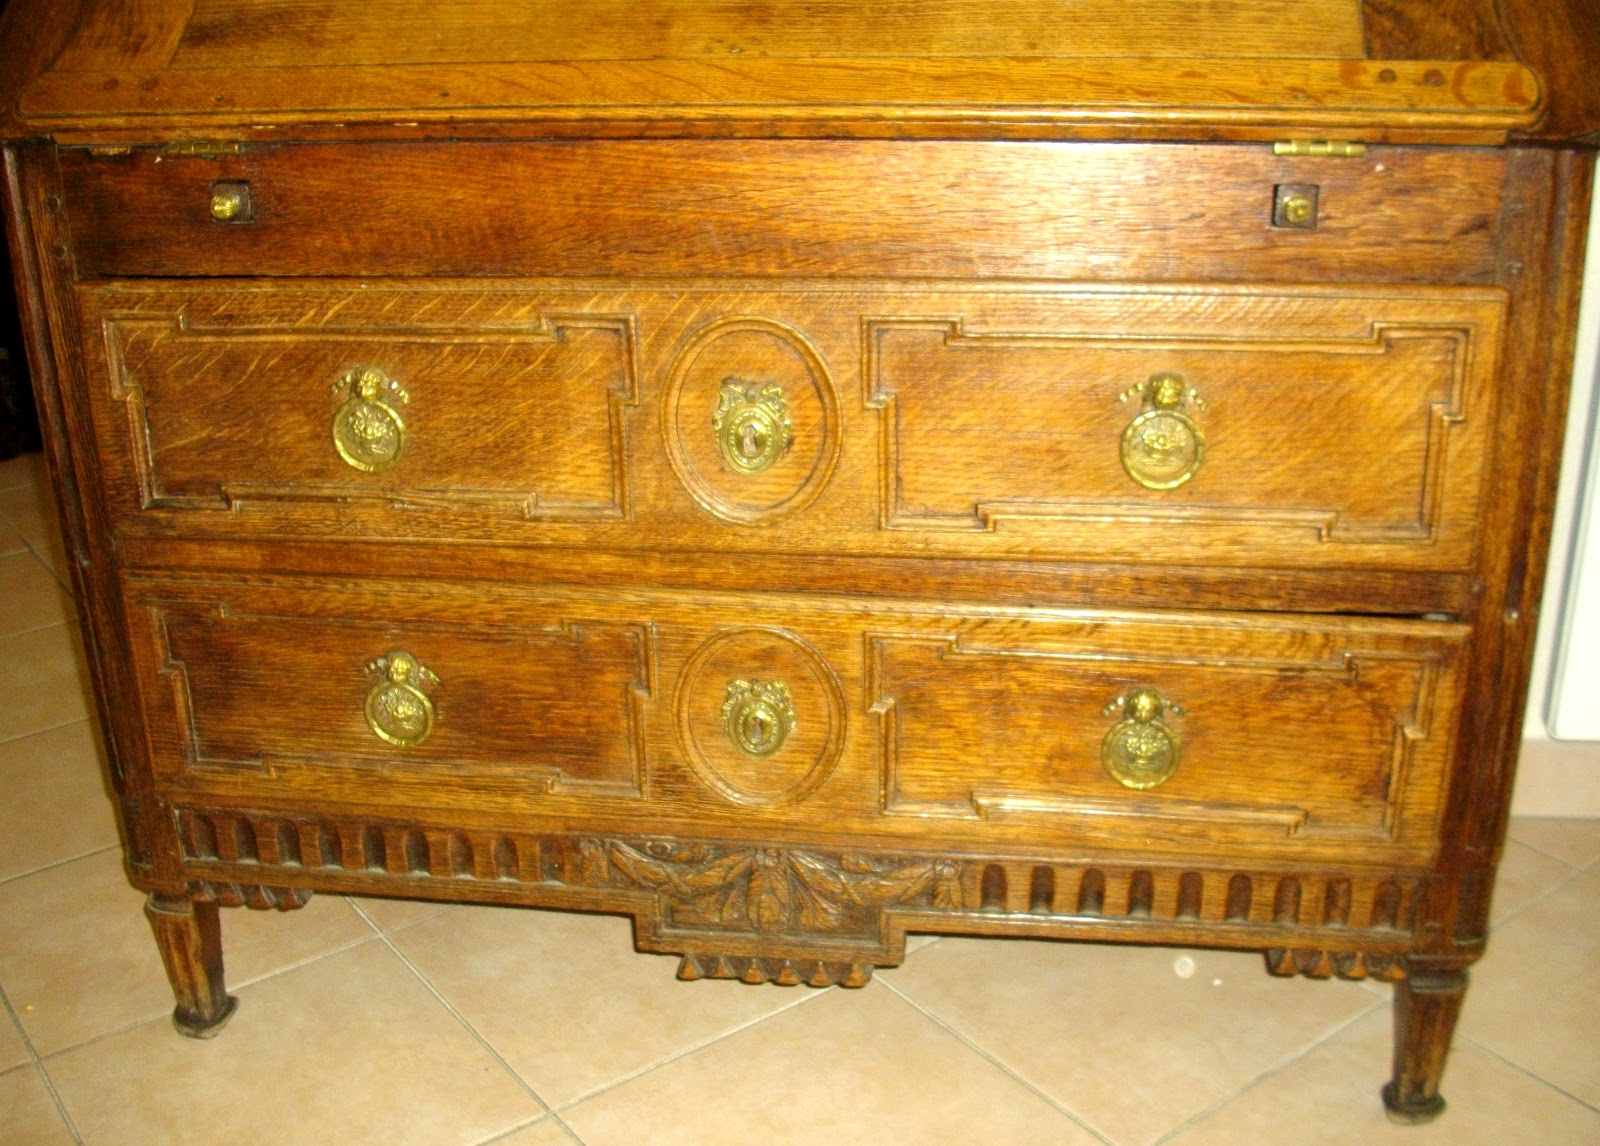 Meuble ancien bureau pente secr taire dos d 39 ane a secret for Meuble bureau a cle